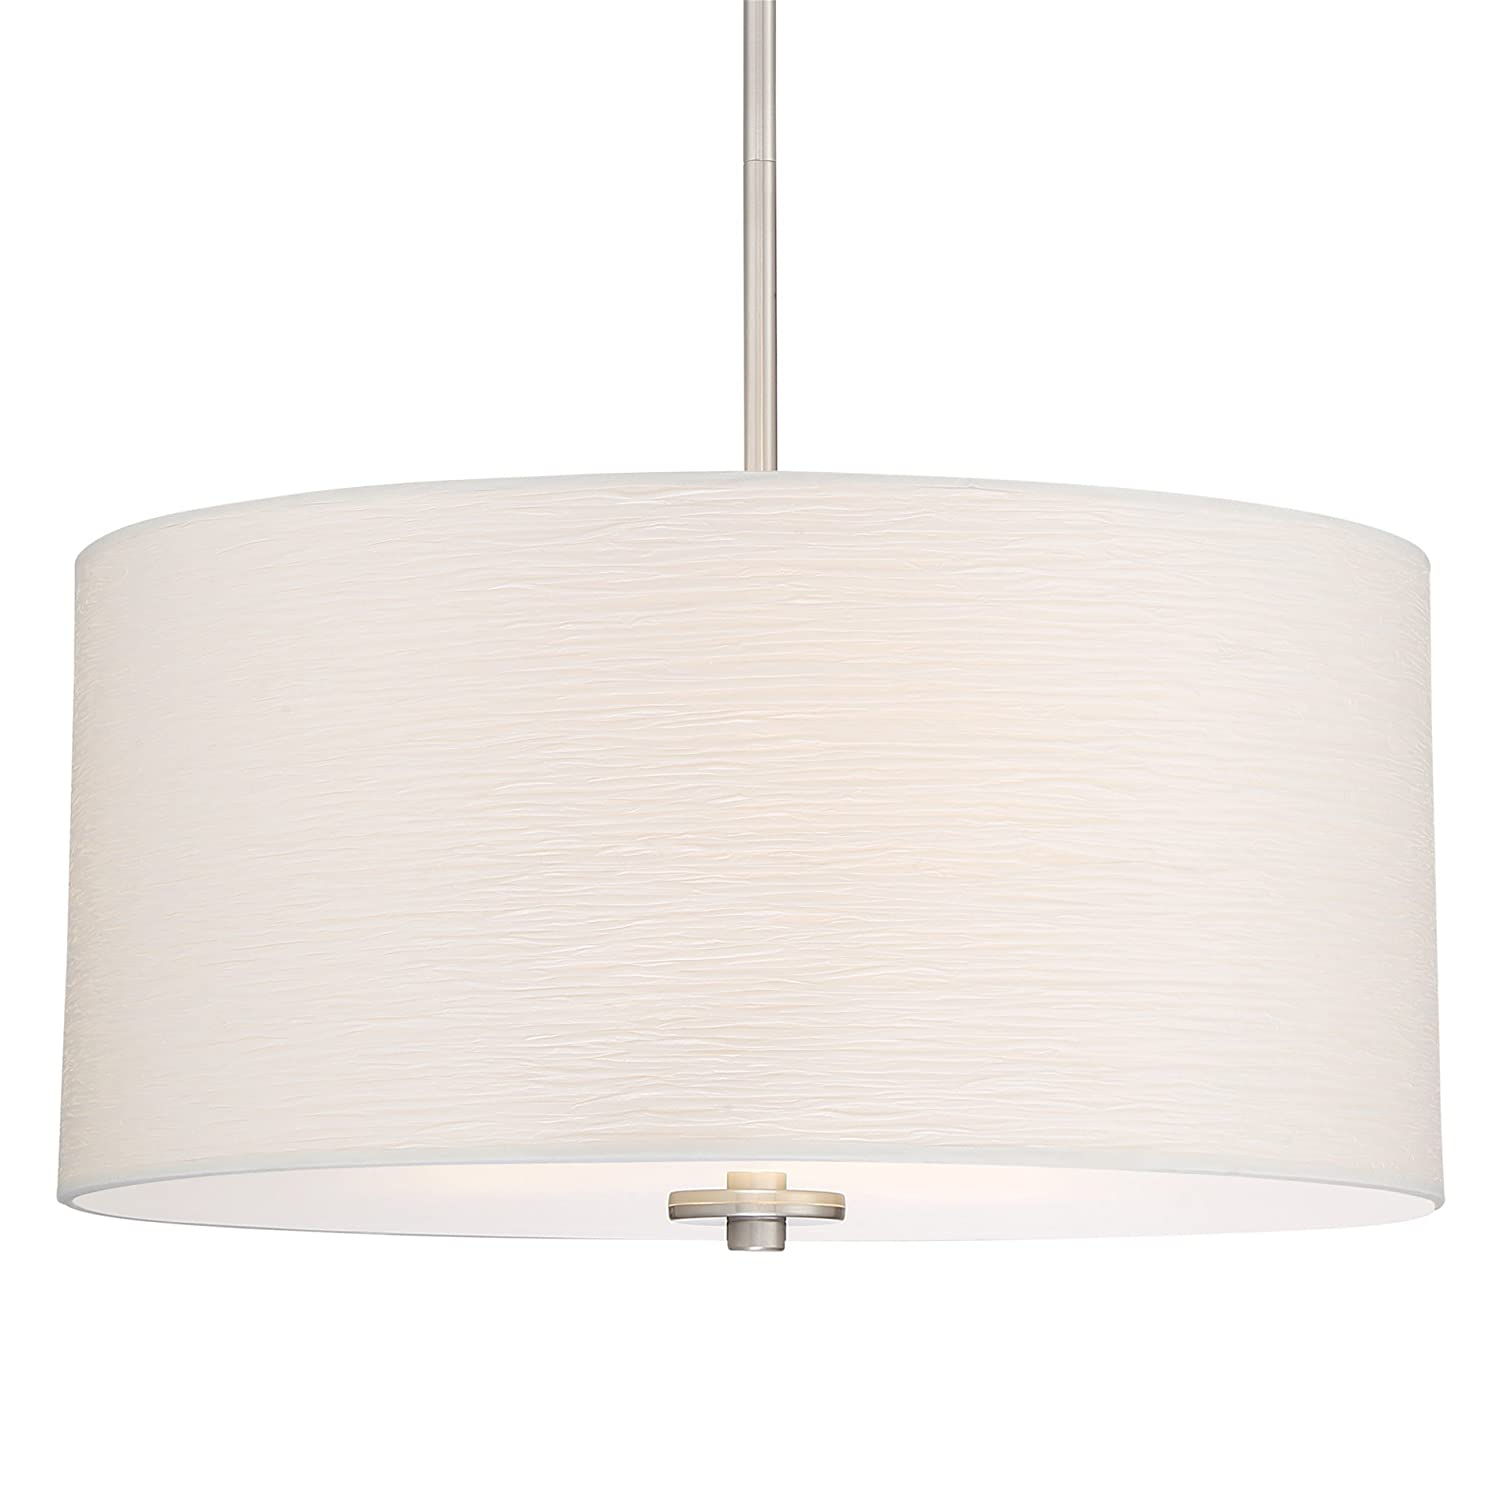 "Kira Home Pearl 18"" Contemporary 3-Light Large Drum Pendant Chandelier + Glass Diffuser, Brushed Nickel Finish"